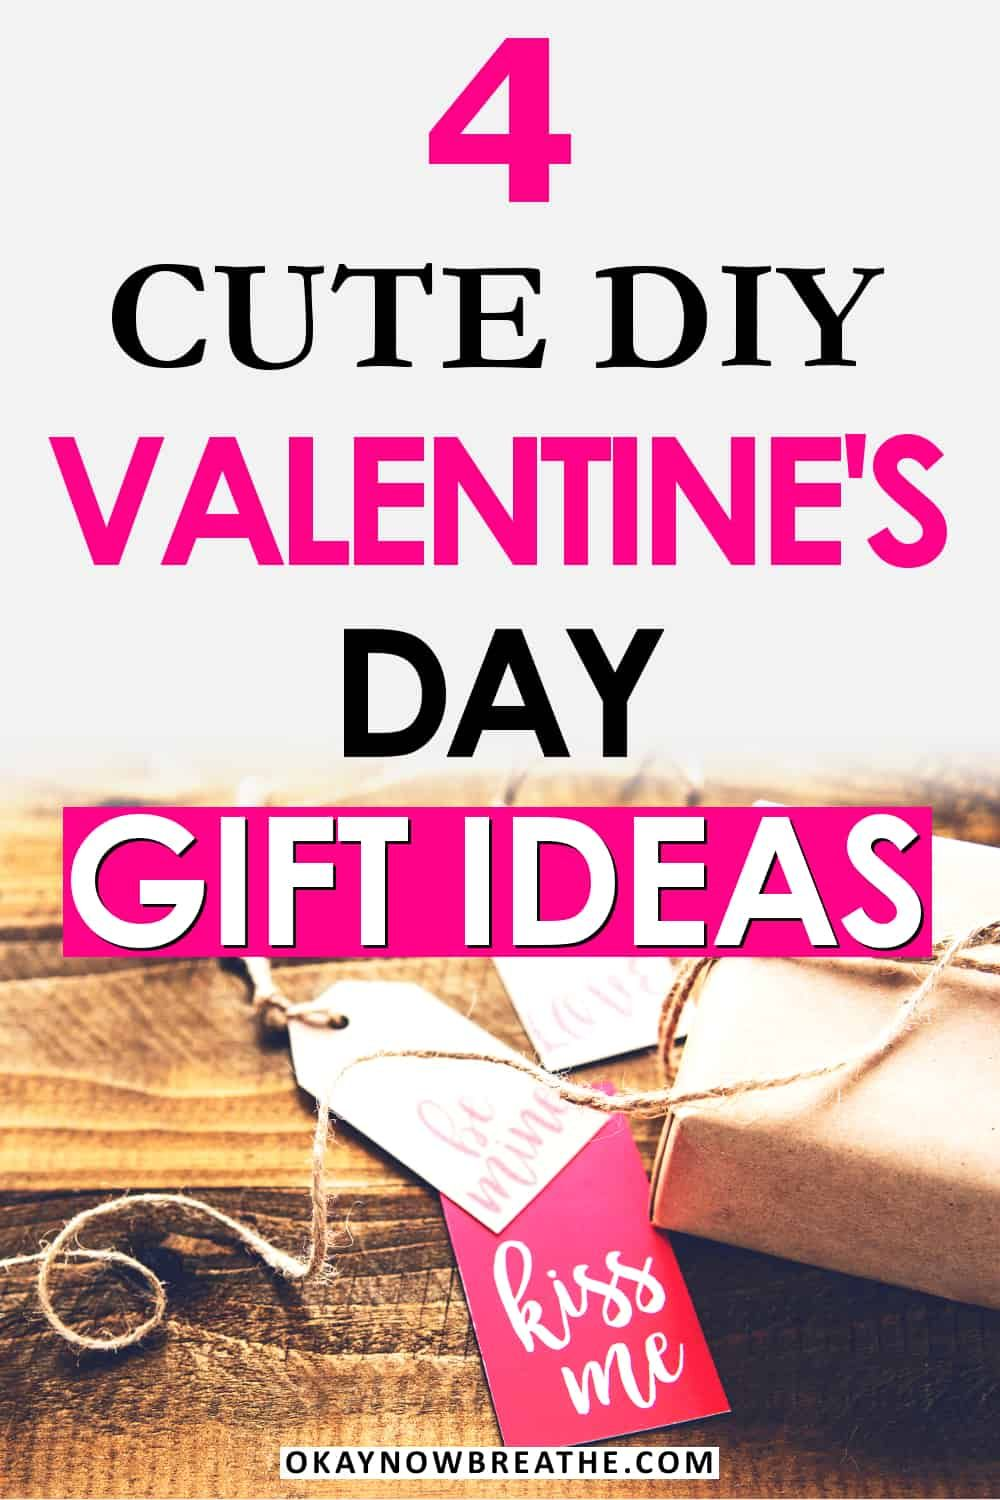 4 Cheesy Diy Gifts For Your Partner This Valentine S Day In 2020